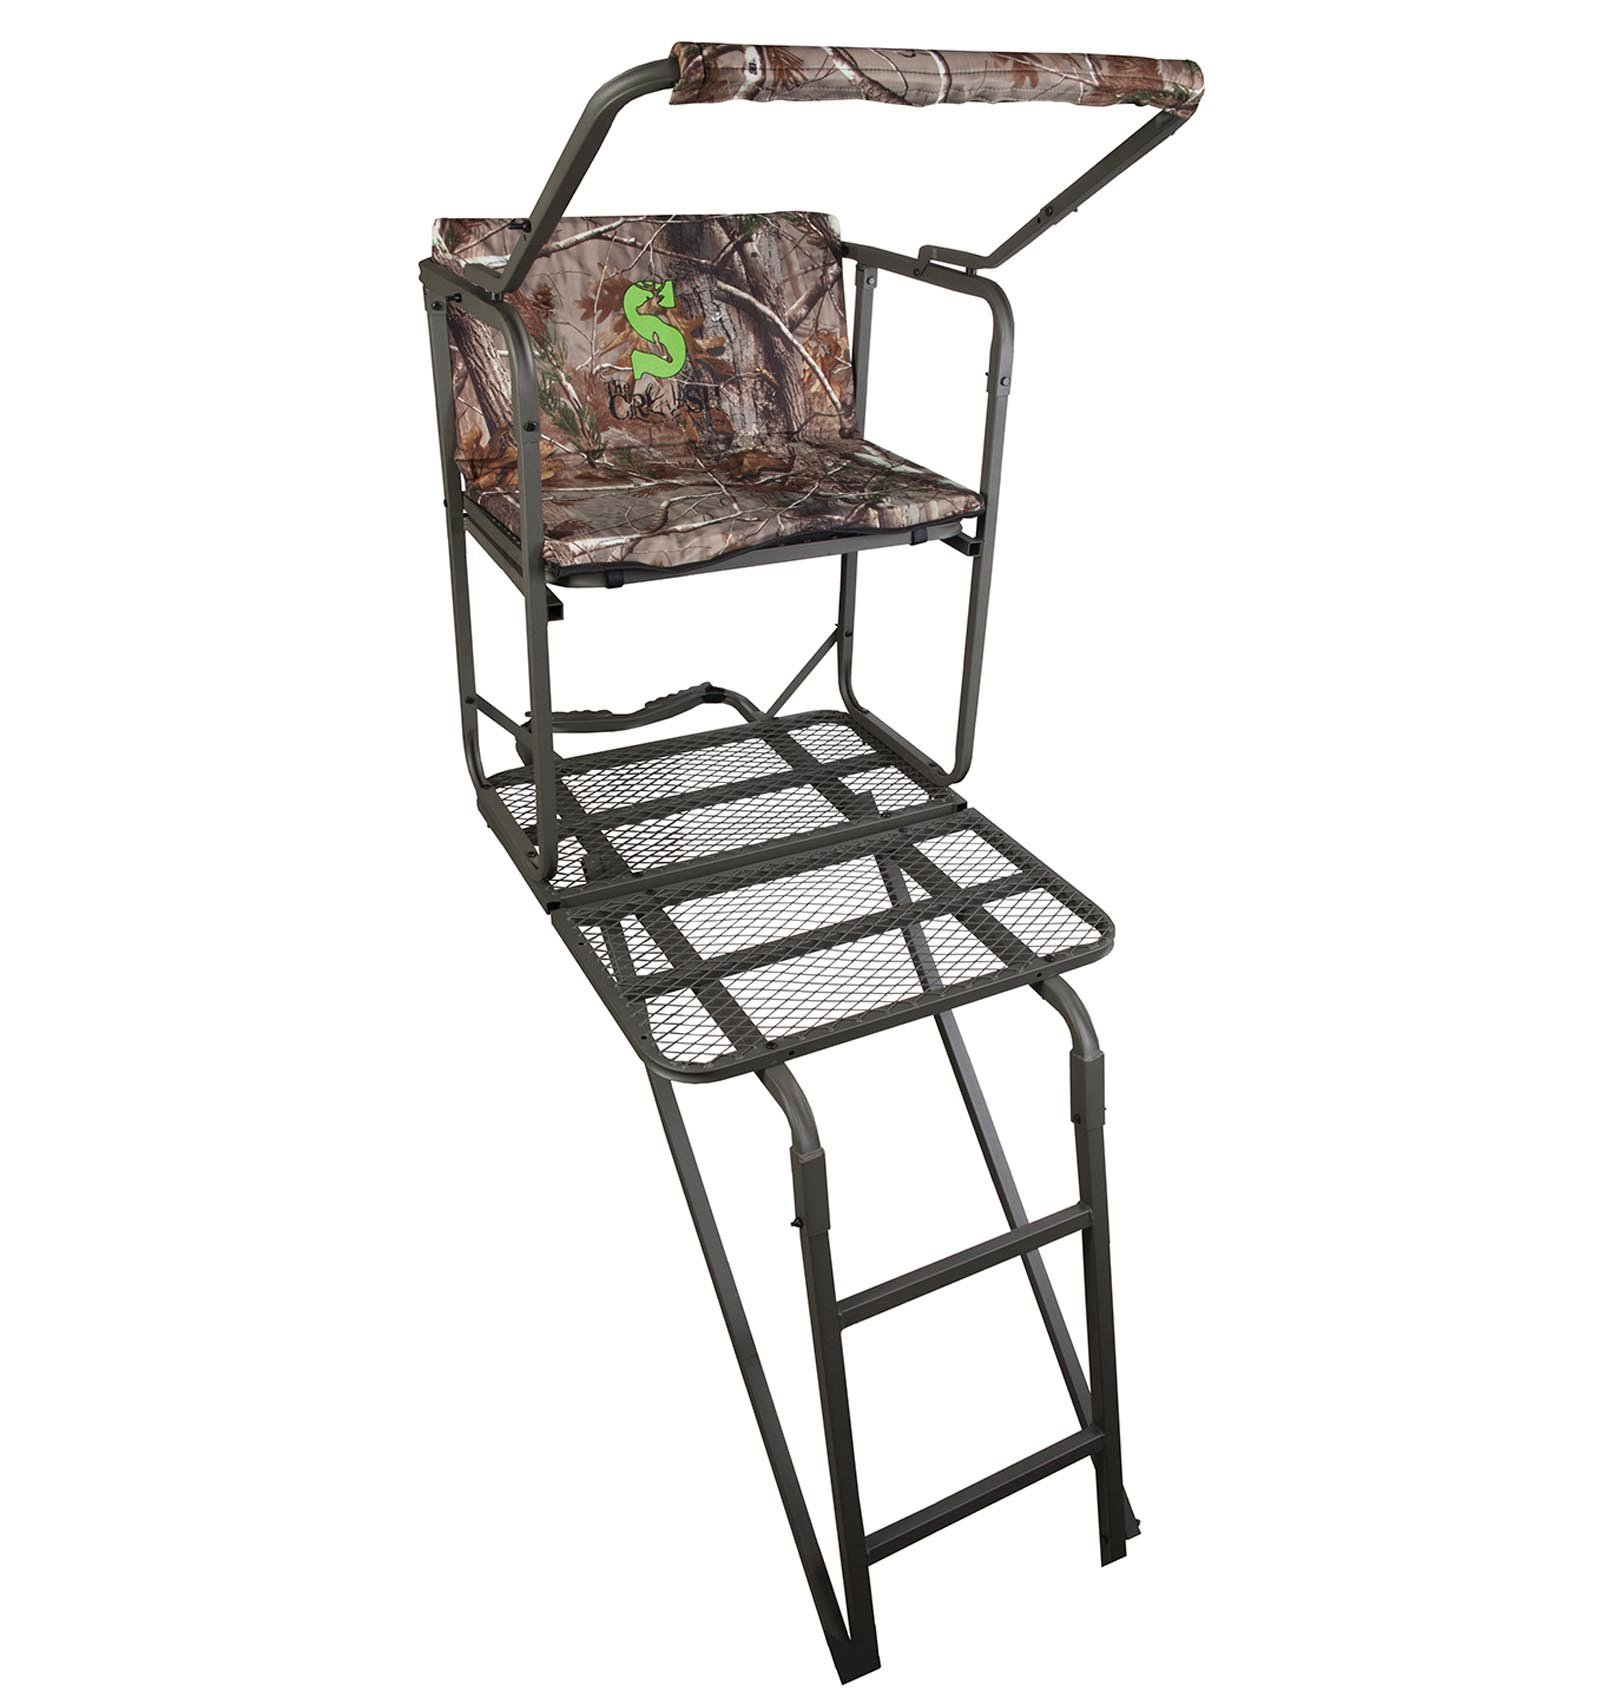 Summit Solo Pro Ladder Stand by Summit Treestands (Image #1)